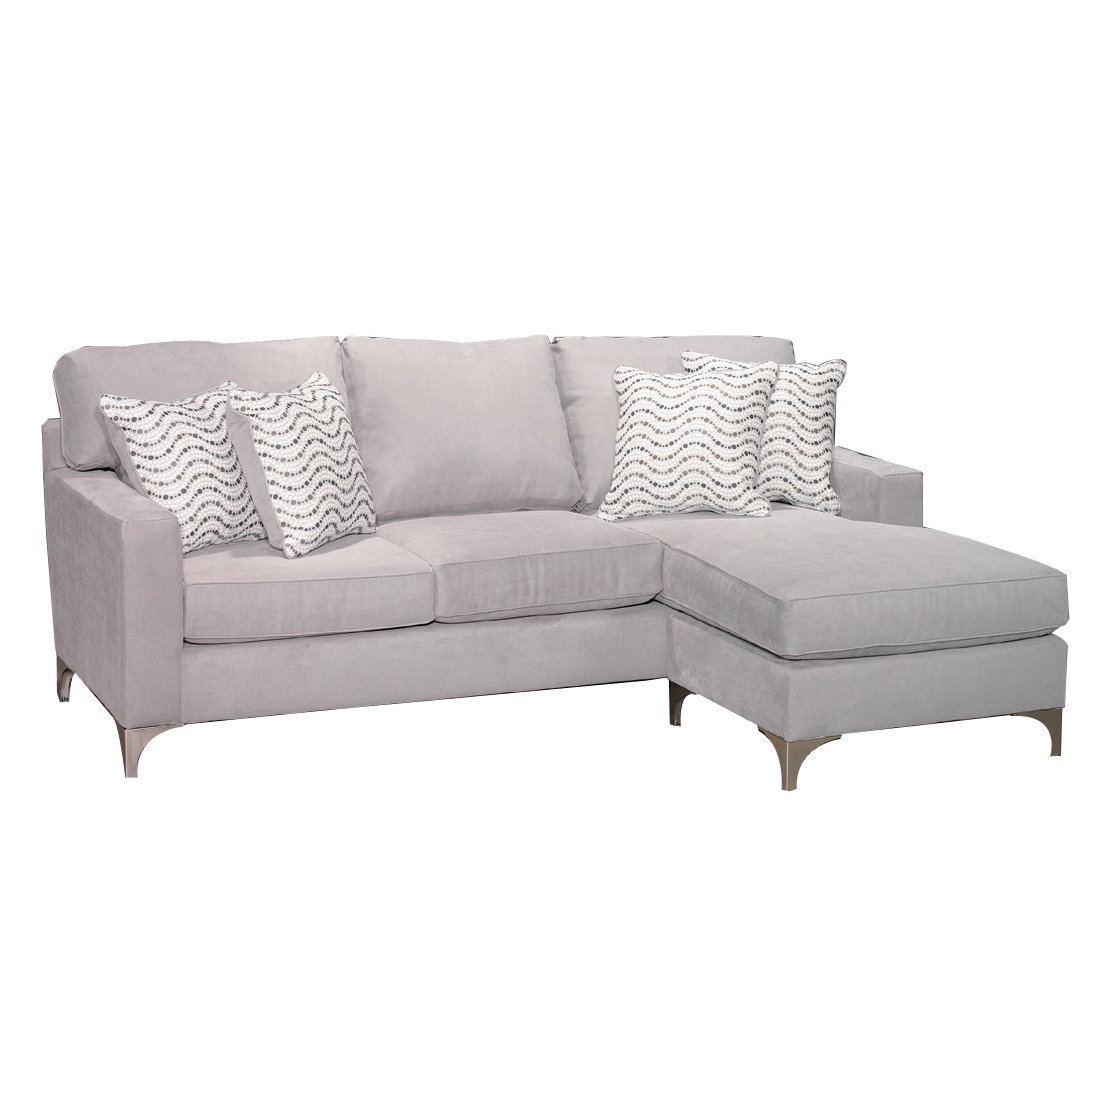 Rc Willey Boise Idaho: Contemporary Gray Sofa-Chaise - Tessa